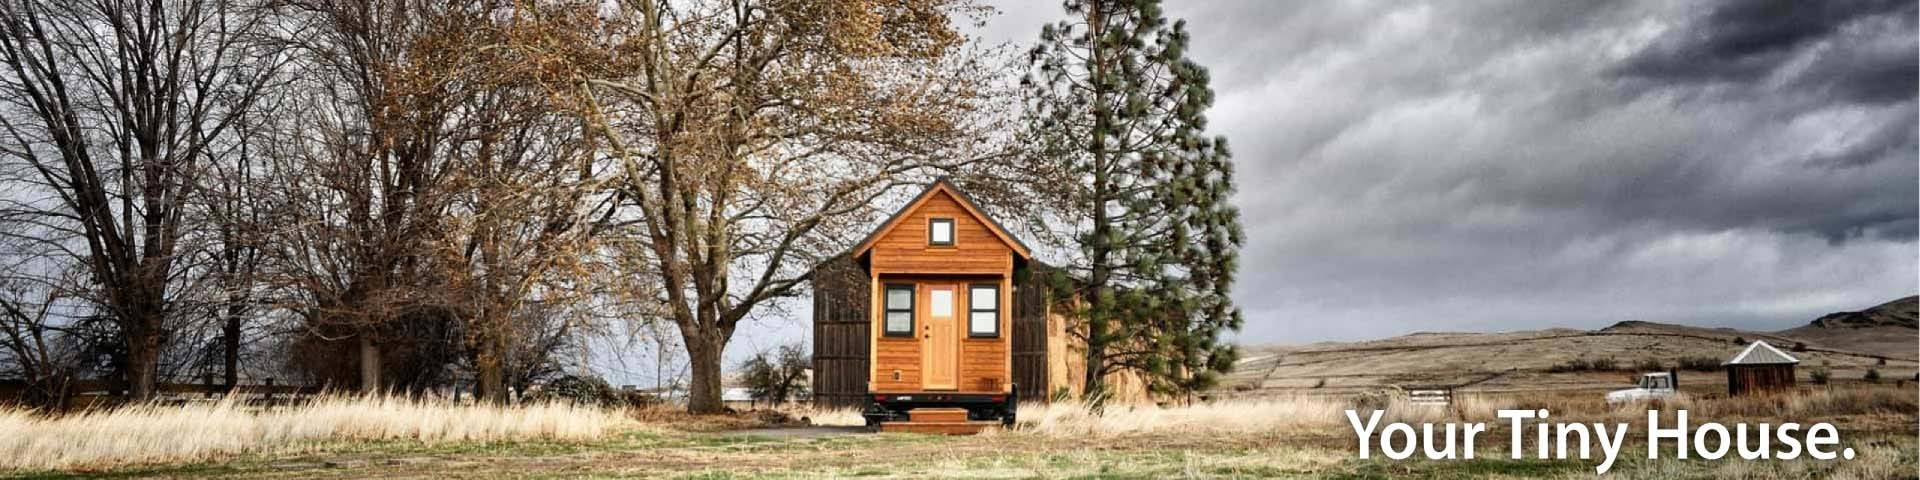 In your Tiny House